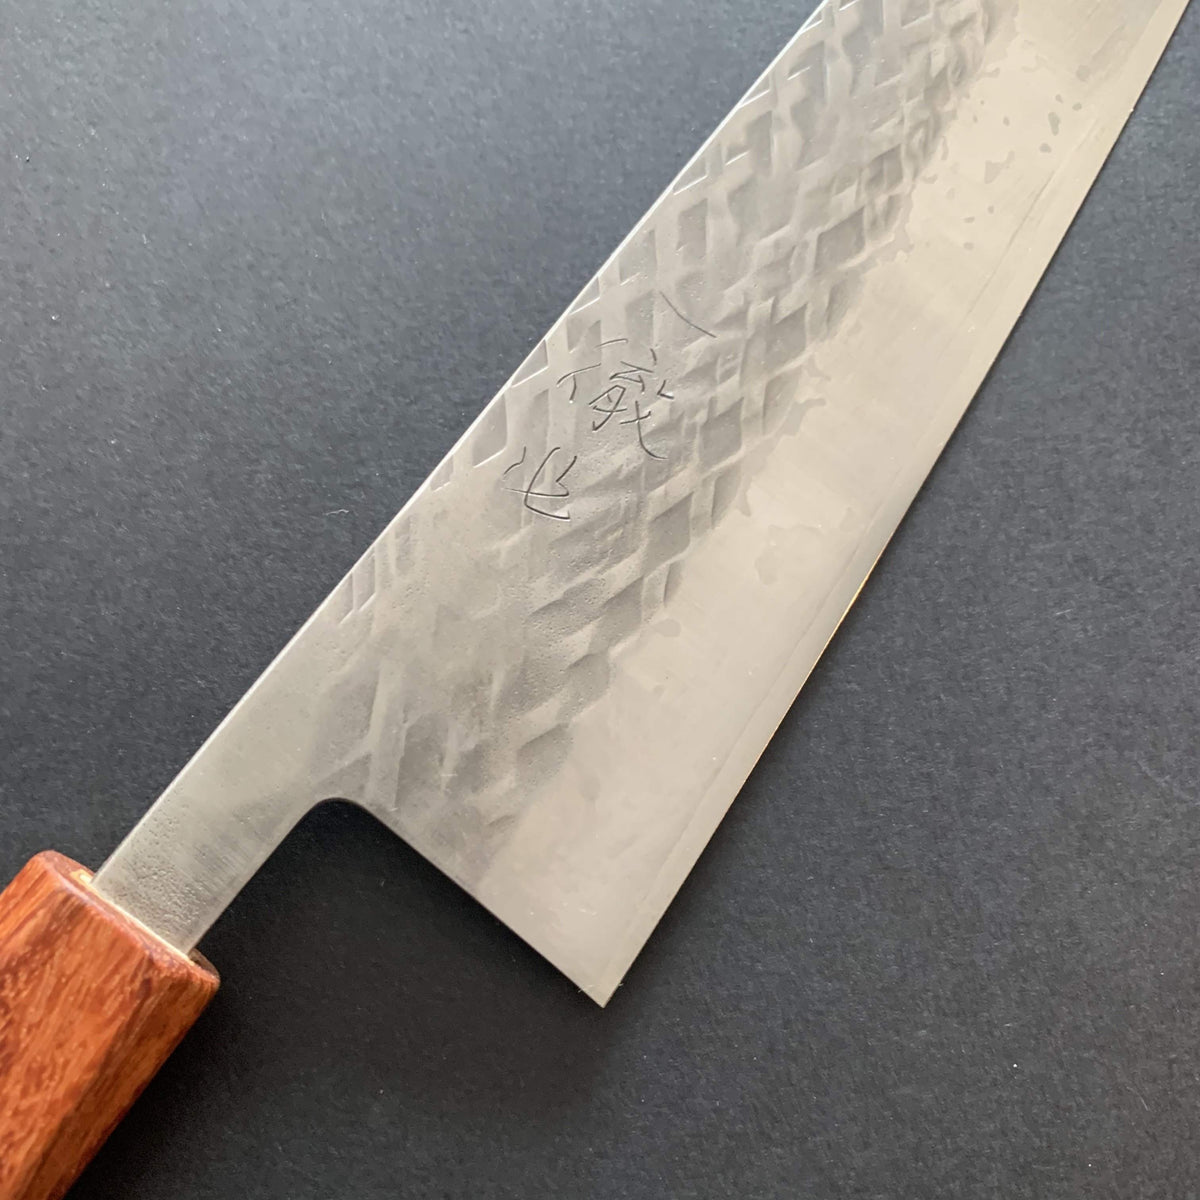 Gyuto knife, SLD steel, tsuchime finish - Tadafusa